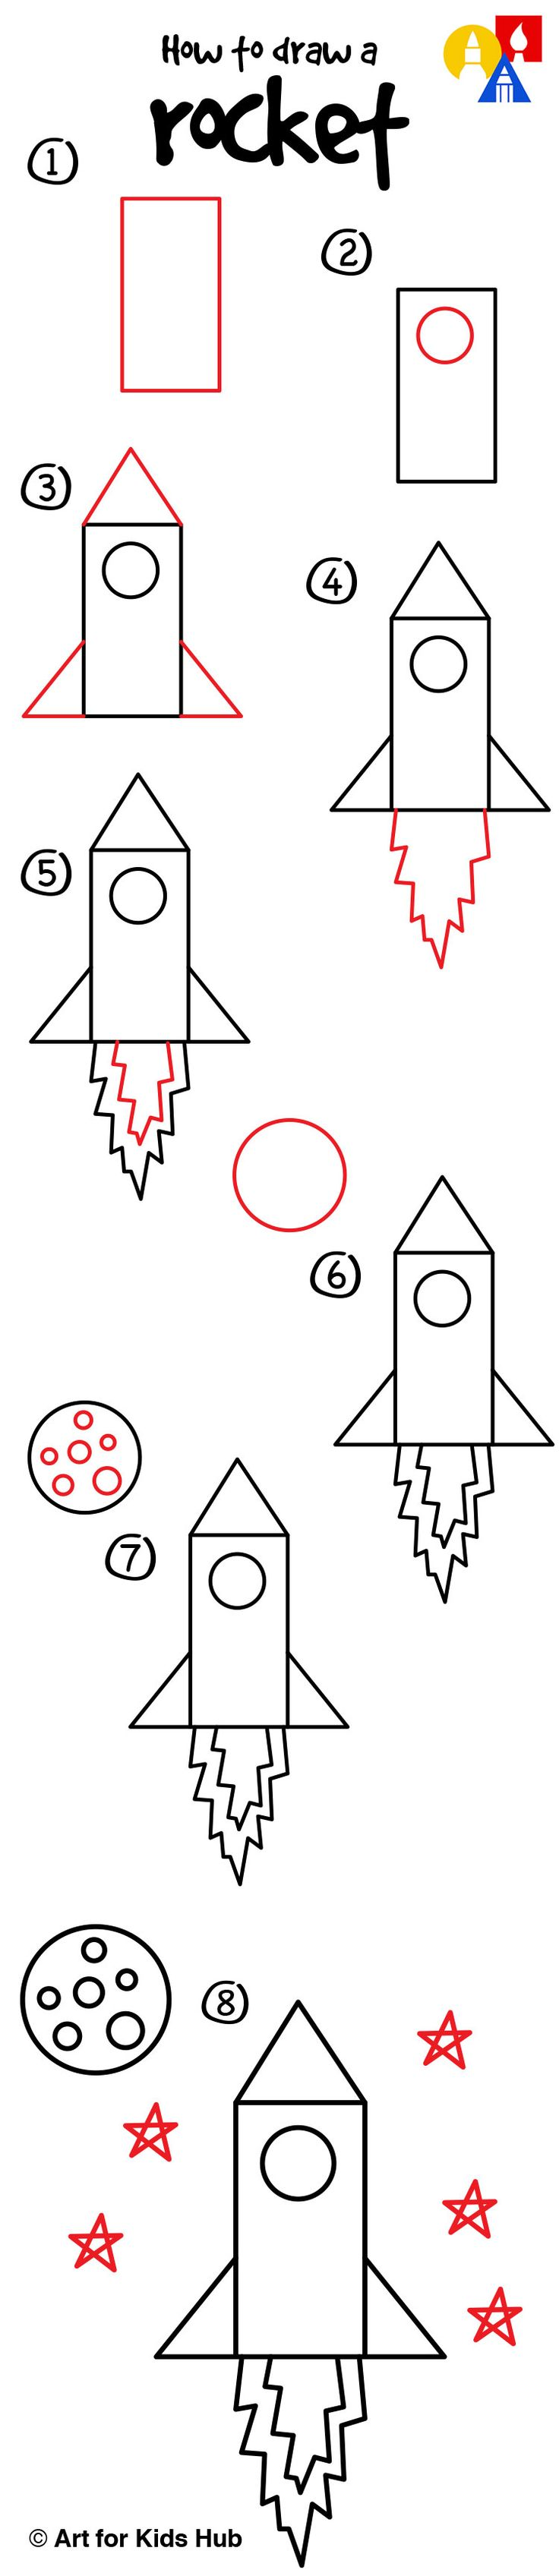 How To Draw A Rocket (Young Artists) - Art For Kids Hub -